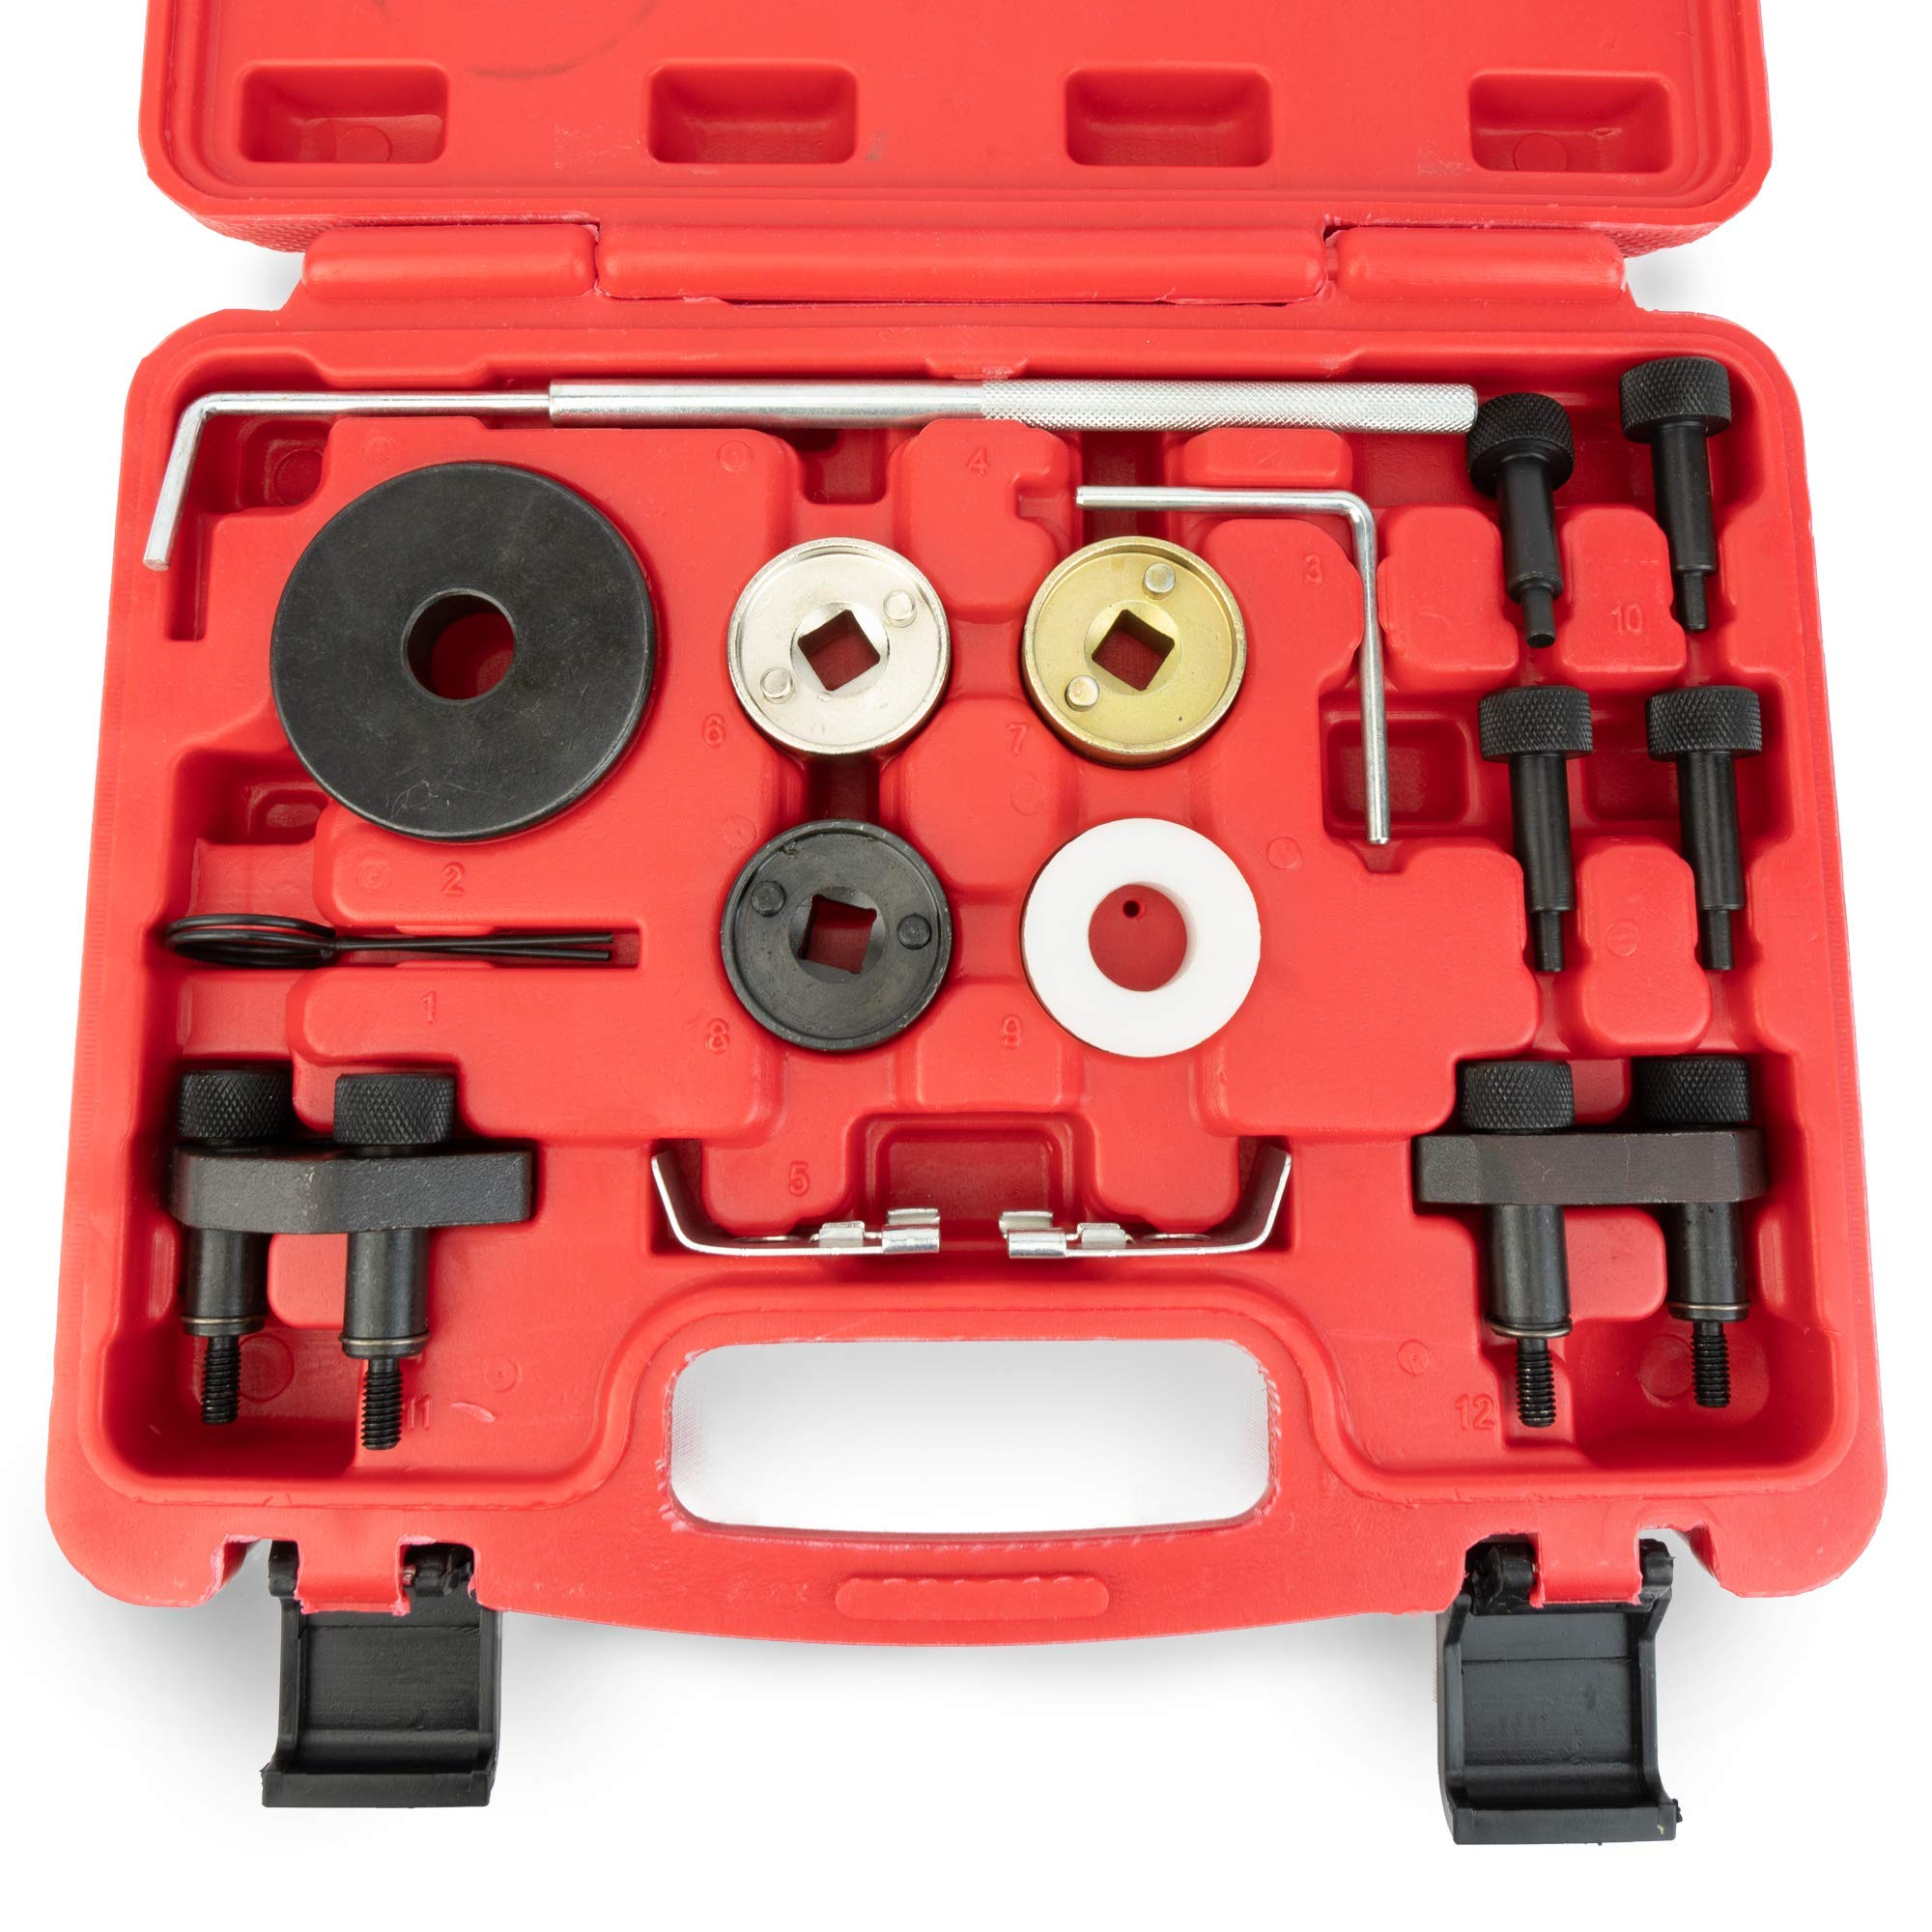 Replacement VAG Volkswagen Audi Timing Tool Kit - 1.8L, 2.0L R4 16V Turbo TSI, TSFI EA888 Engine - Replaces# T10352, T10368, T40098, T40011 & More - Audi Camshaft & Crankshaft Timing Position by Delray Auto Parts (Image #4)